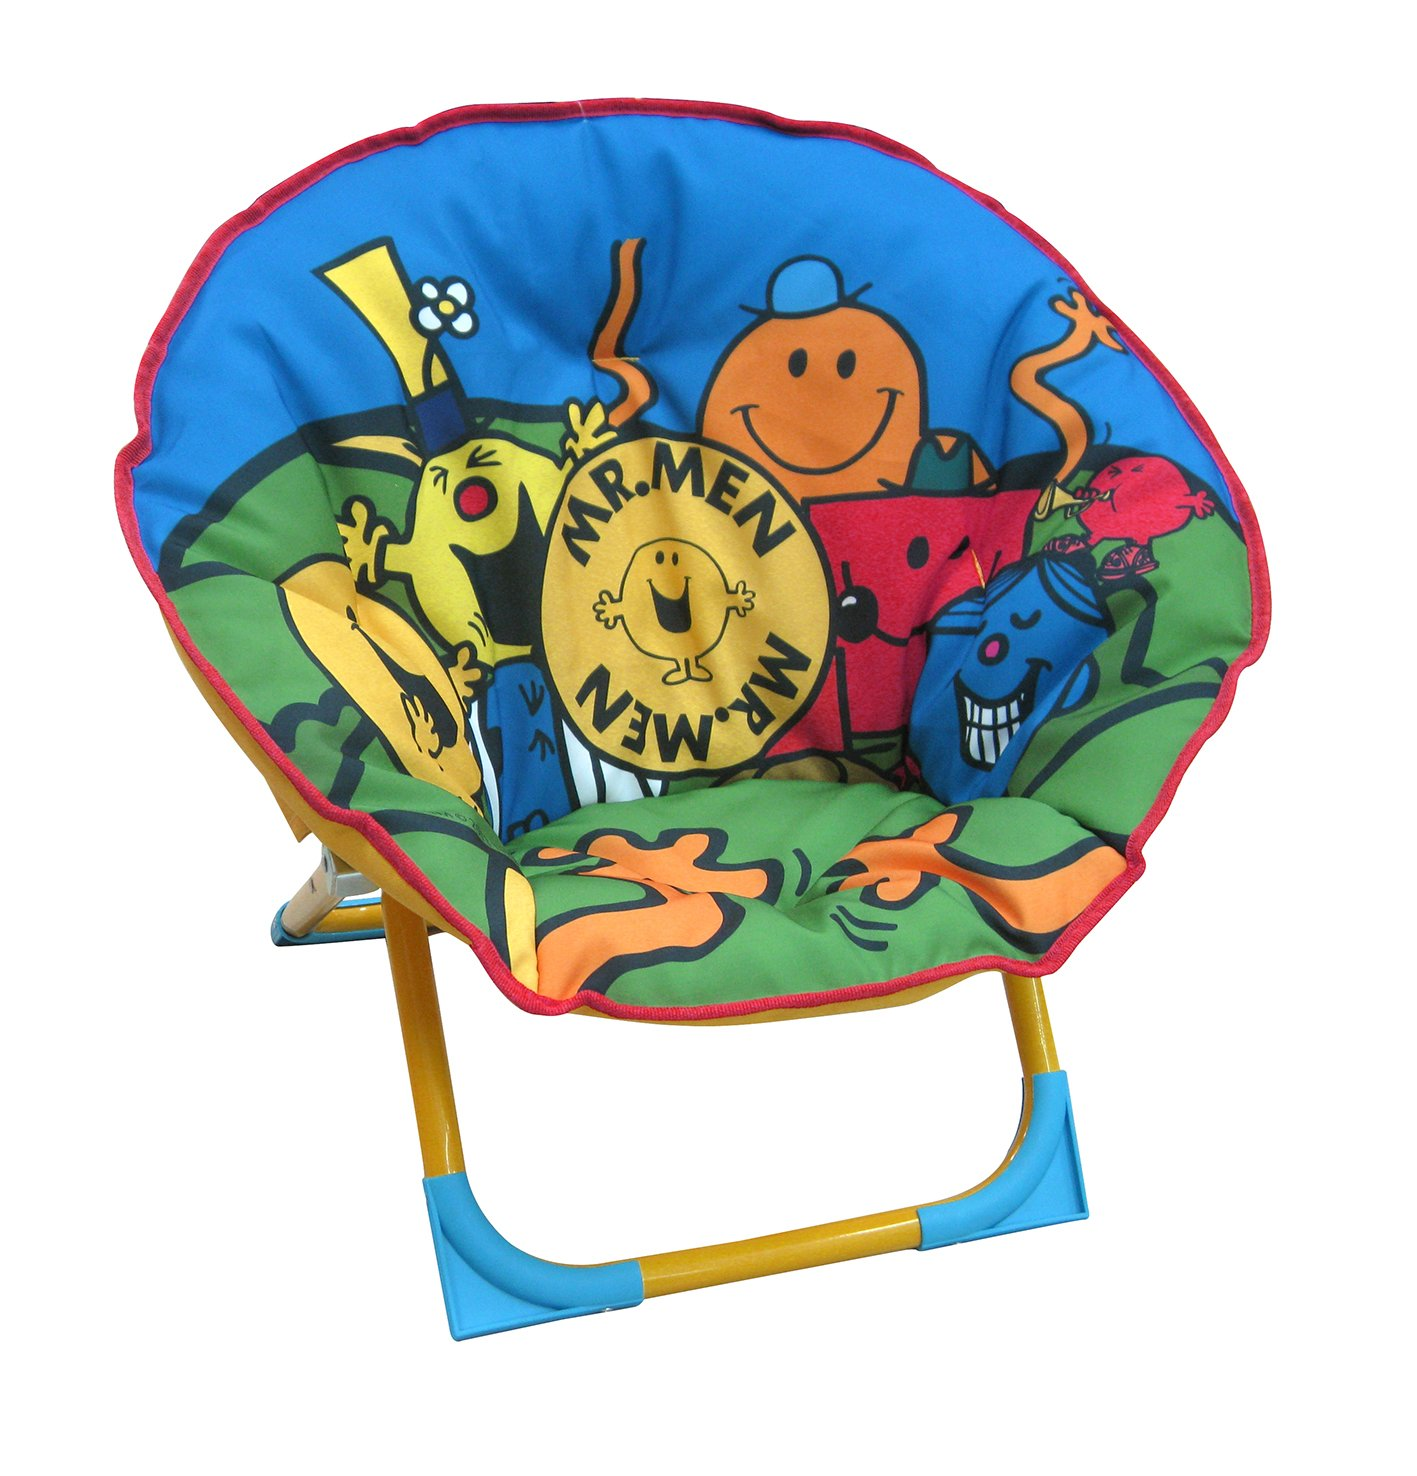 Paw Patrol Childrens Folding Moon Chair Kids Round Seat Amazon